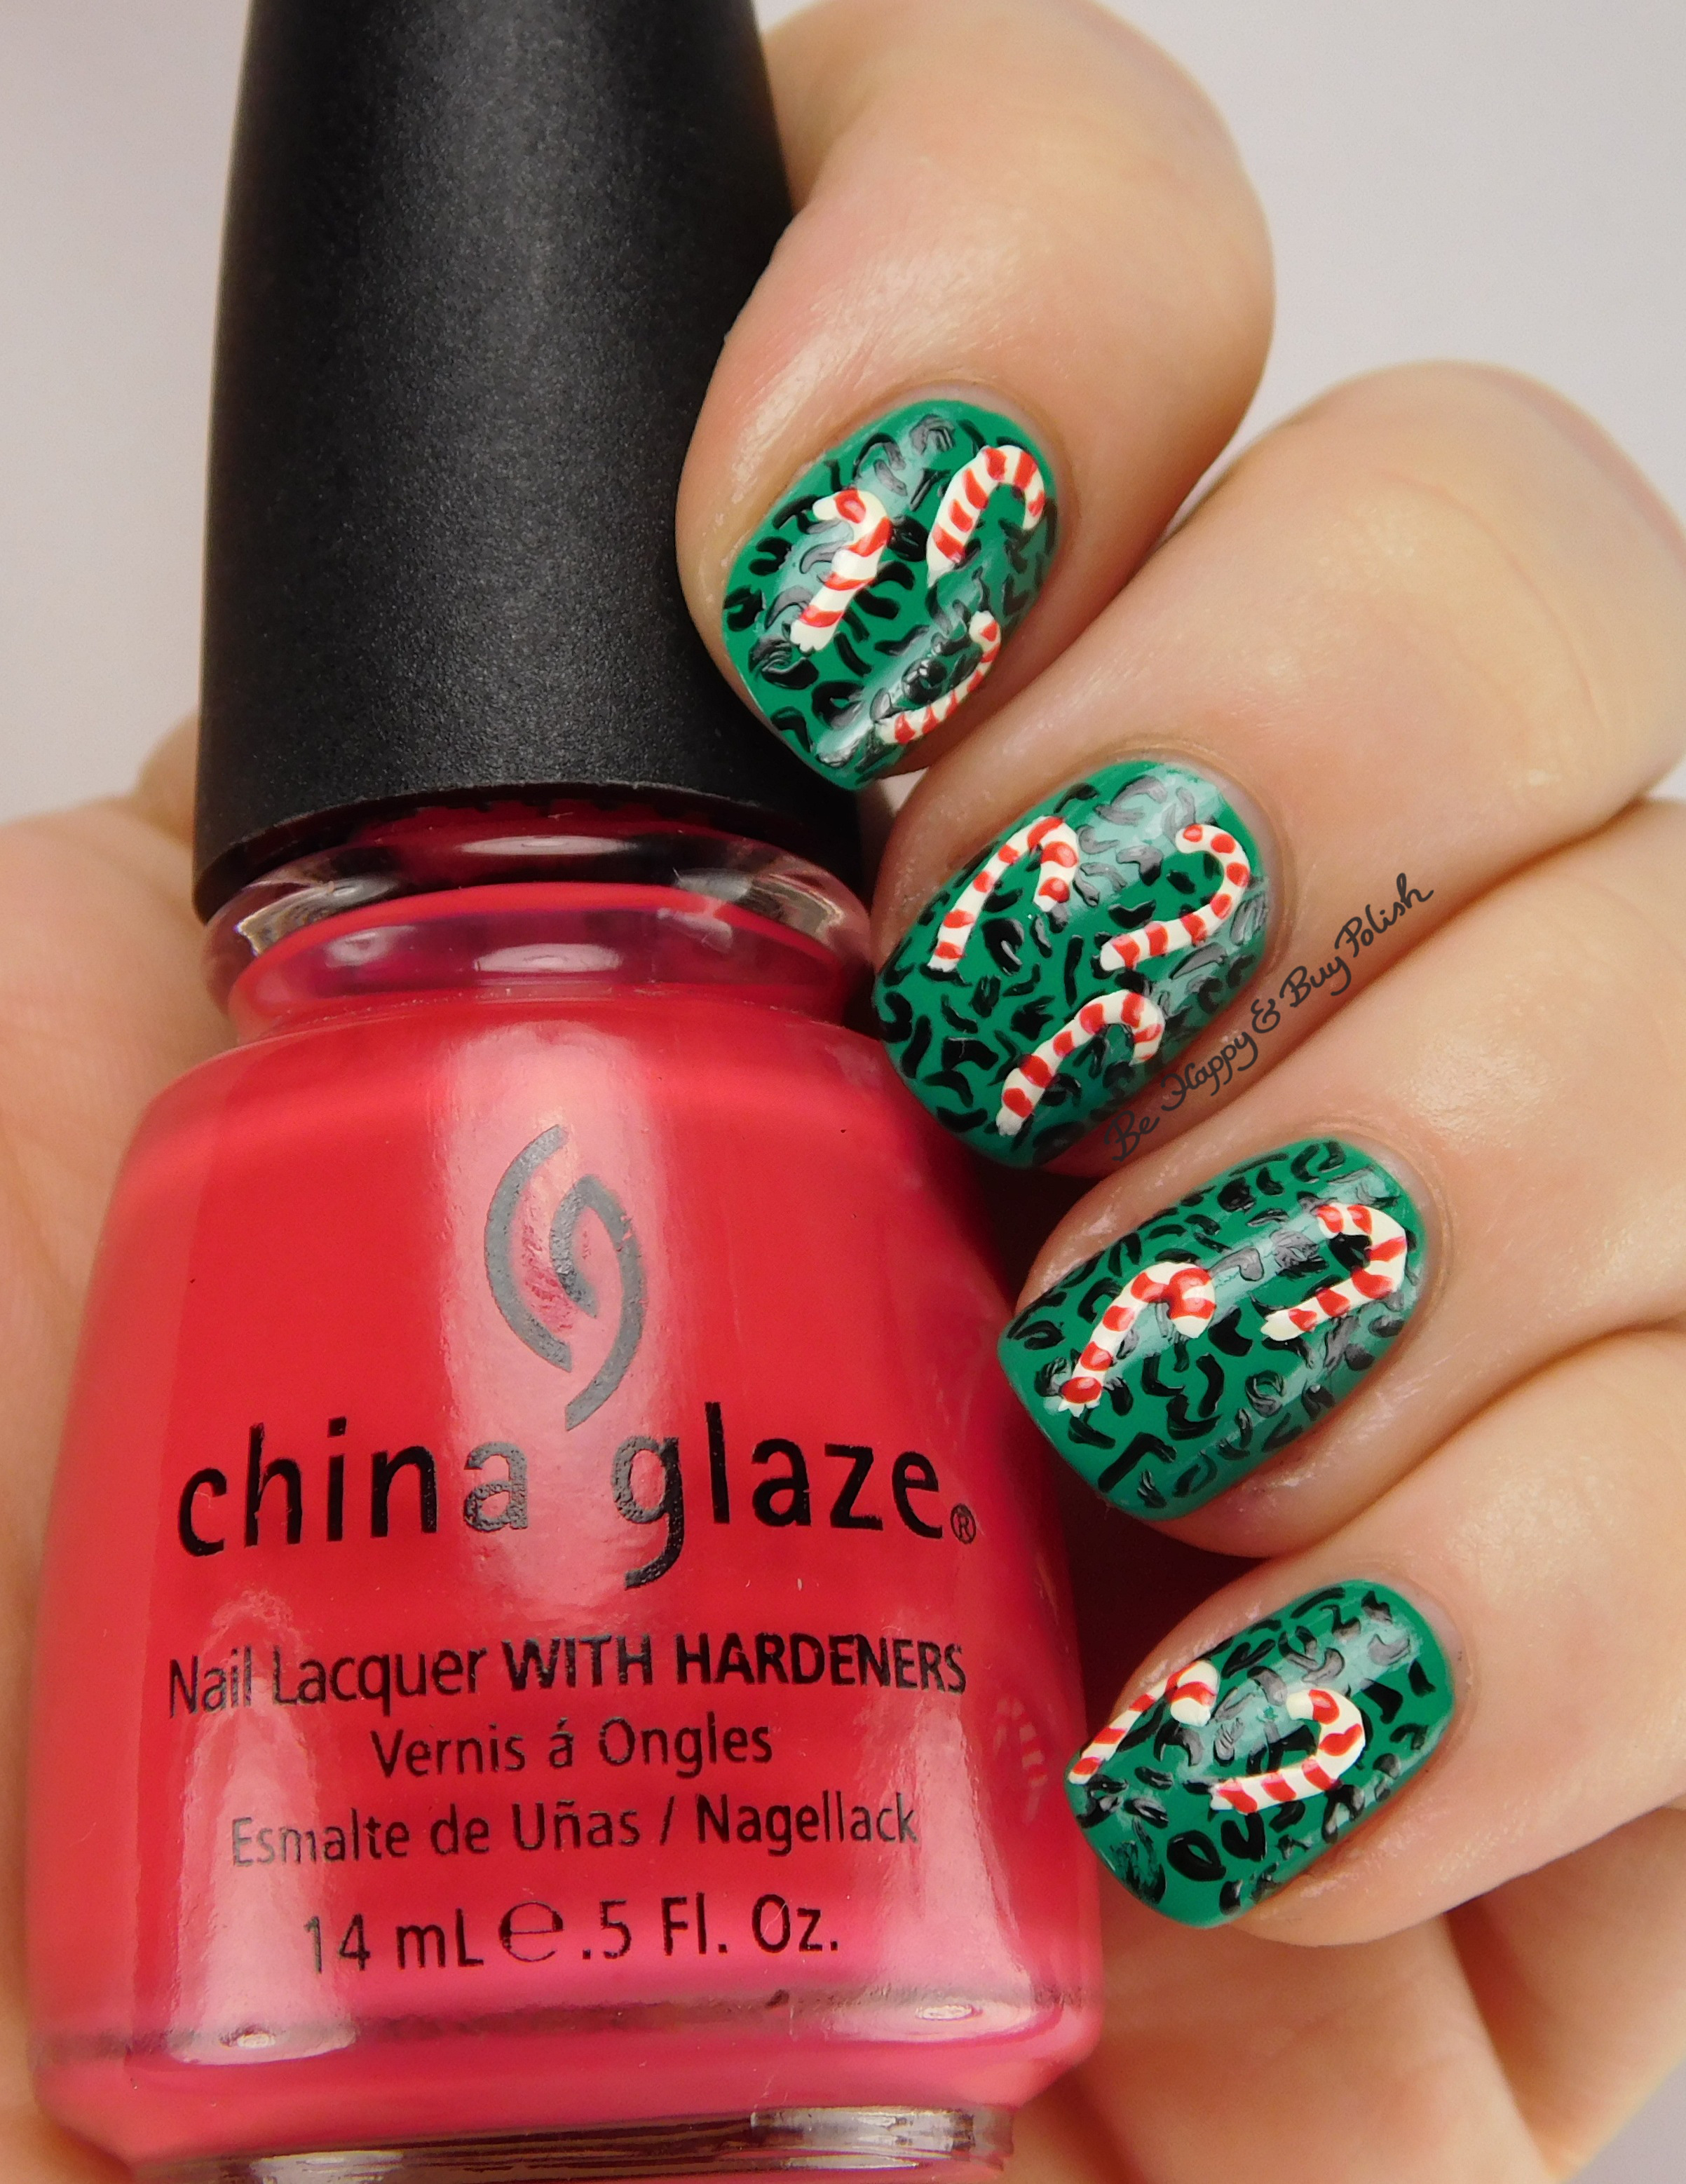 12 Days Of Christmas Nail Art Challenge Ugly Sweater Be Happy